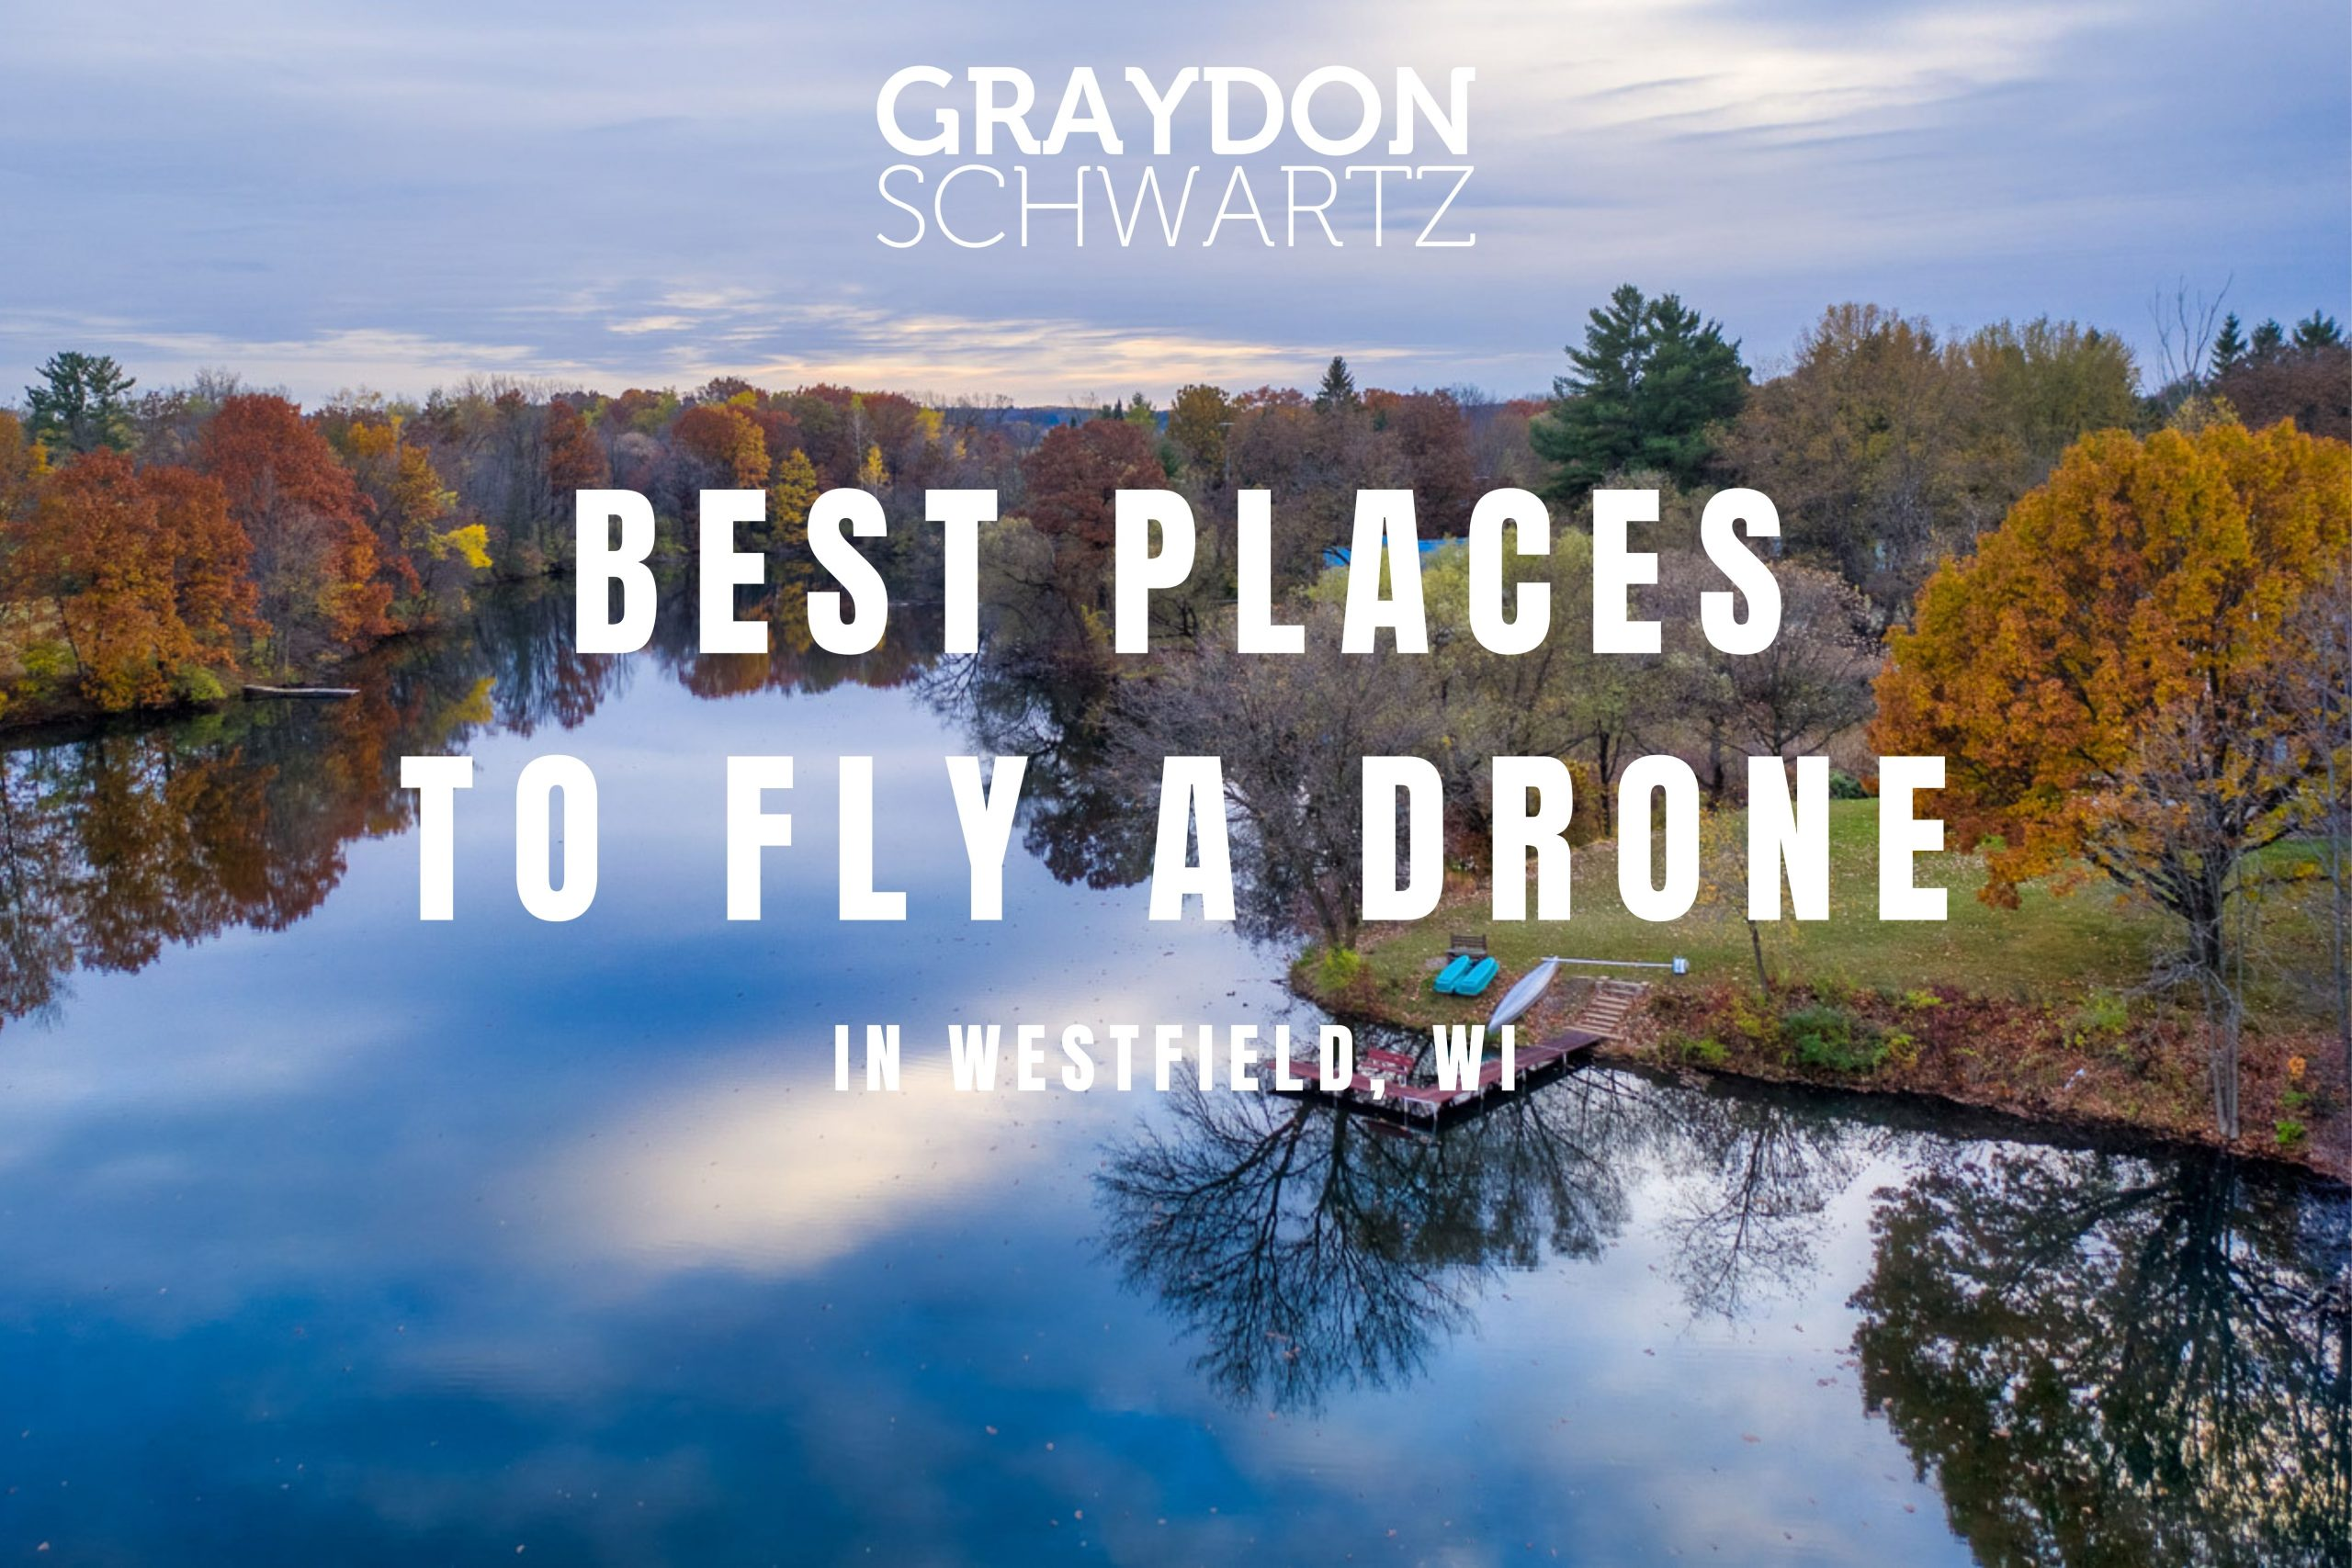 The 5 Best Places to Fly a Drone in Westfield, Wisconsin